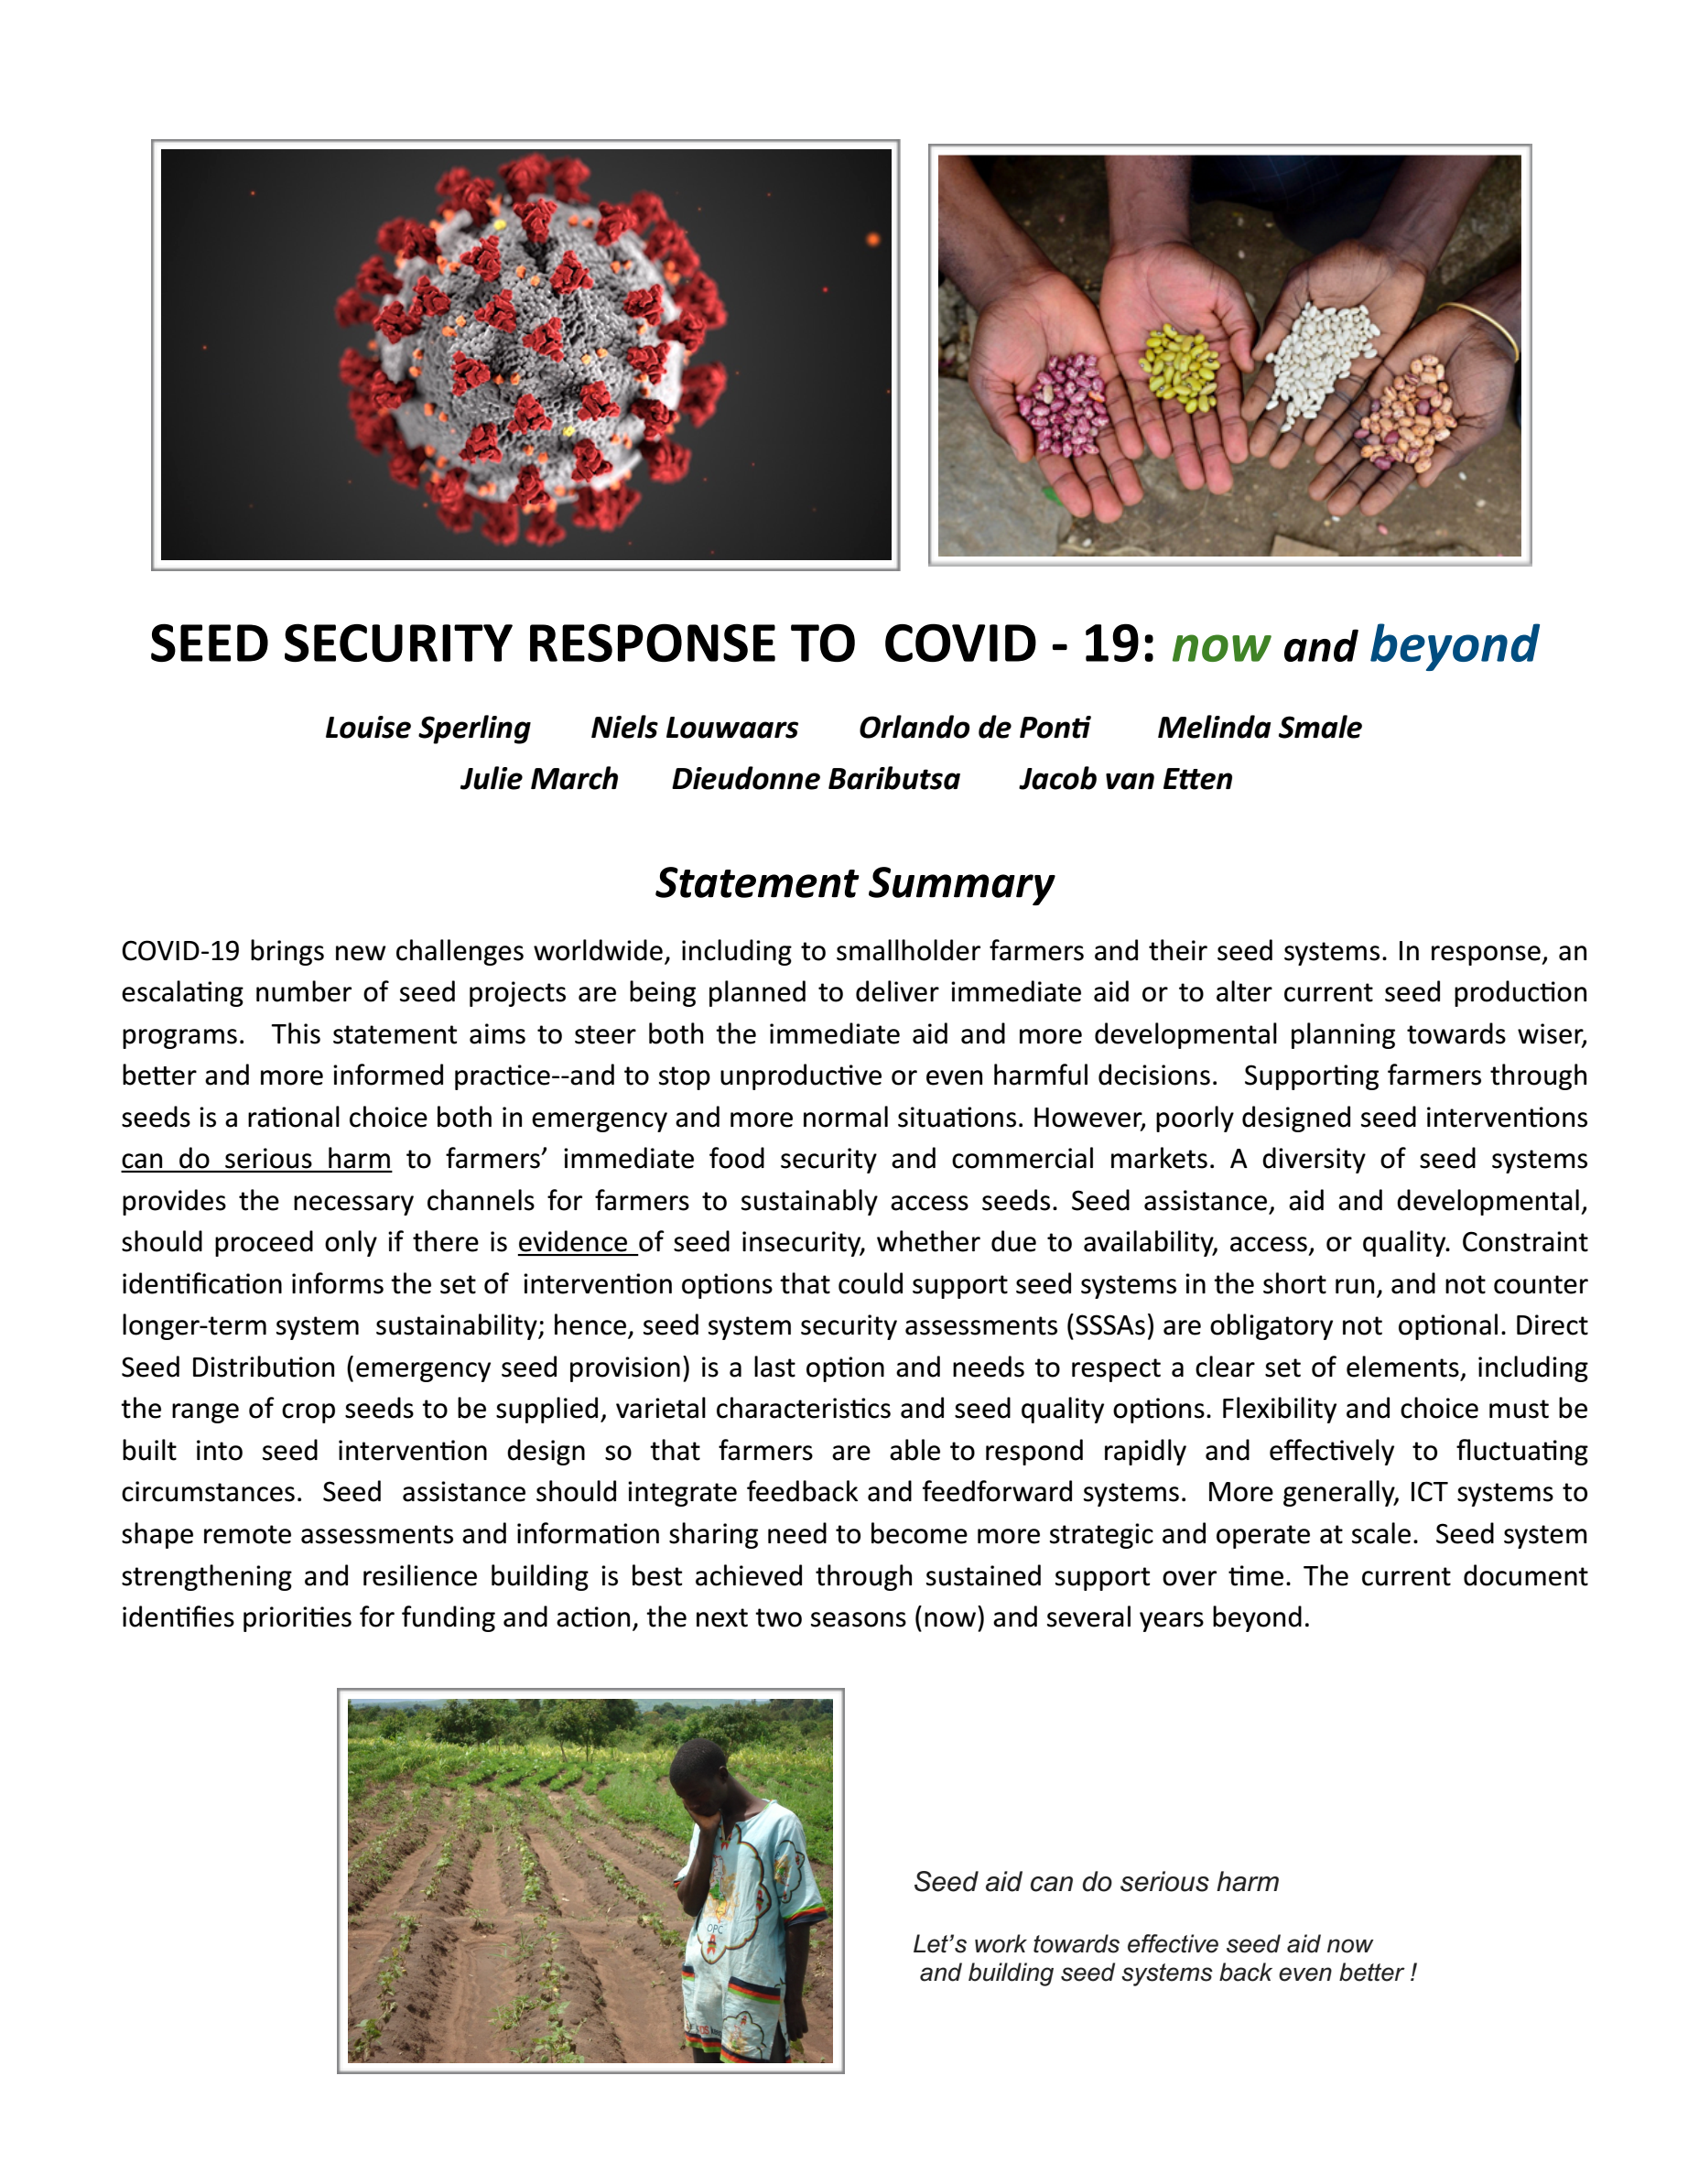 COVID19 and Seed Security